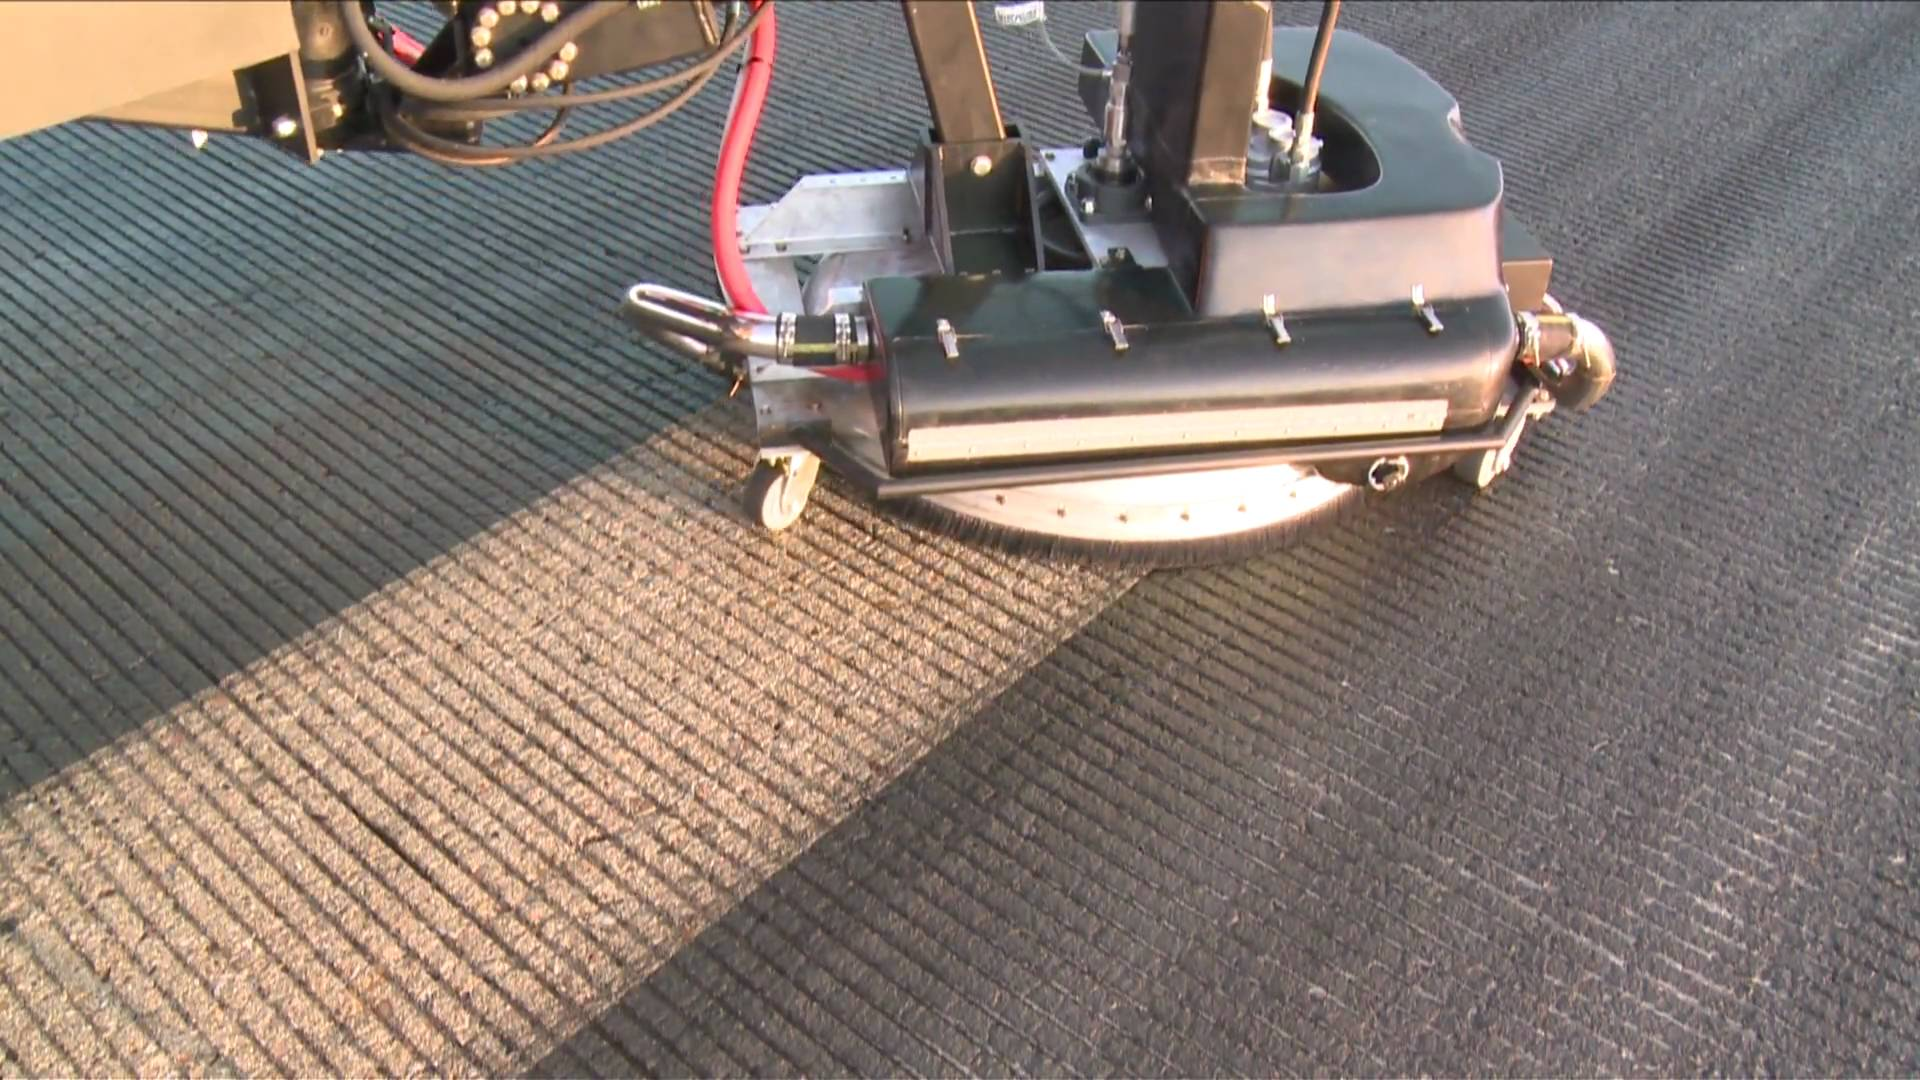 Removing Rubber from Airport Runwas Is Satisfying to Watch